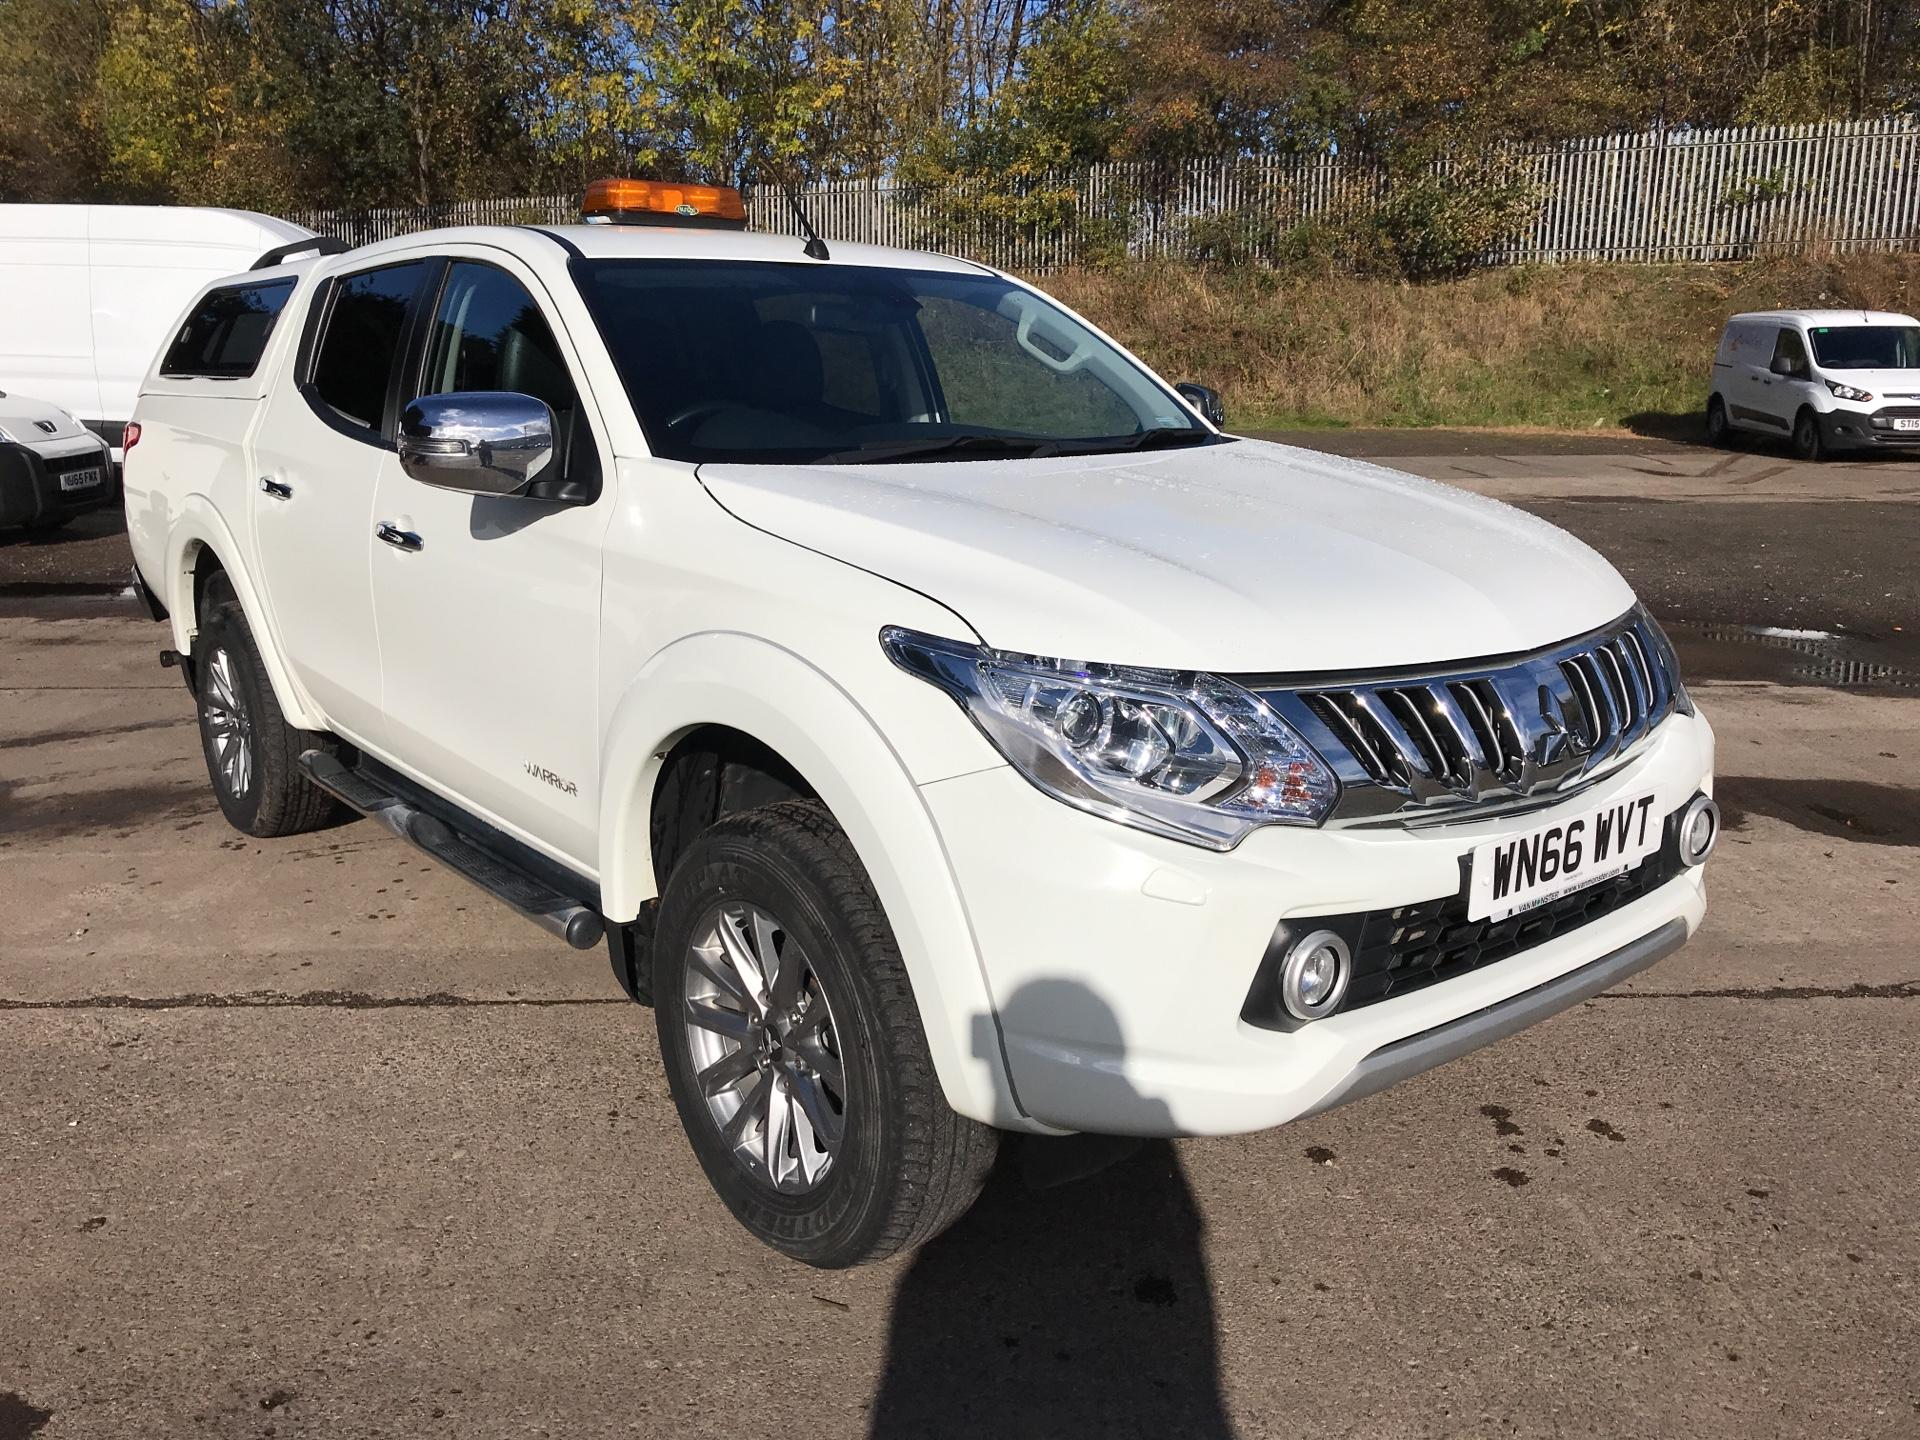 2016 Mitsubishi L200 DOUBLE CAB DI-D 178PS WARRIOR 4WD AUTO (WN66WVT)